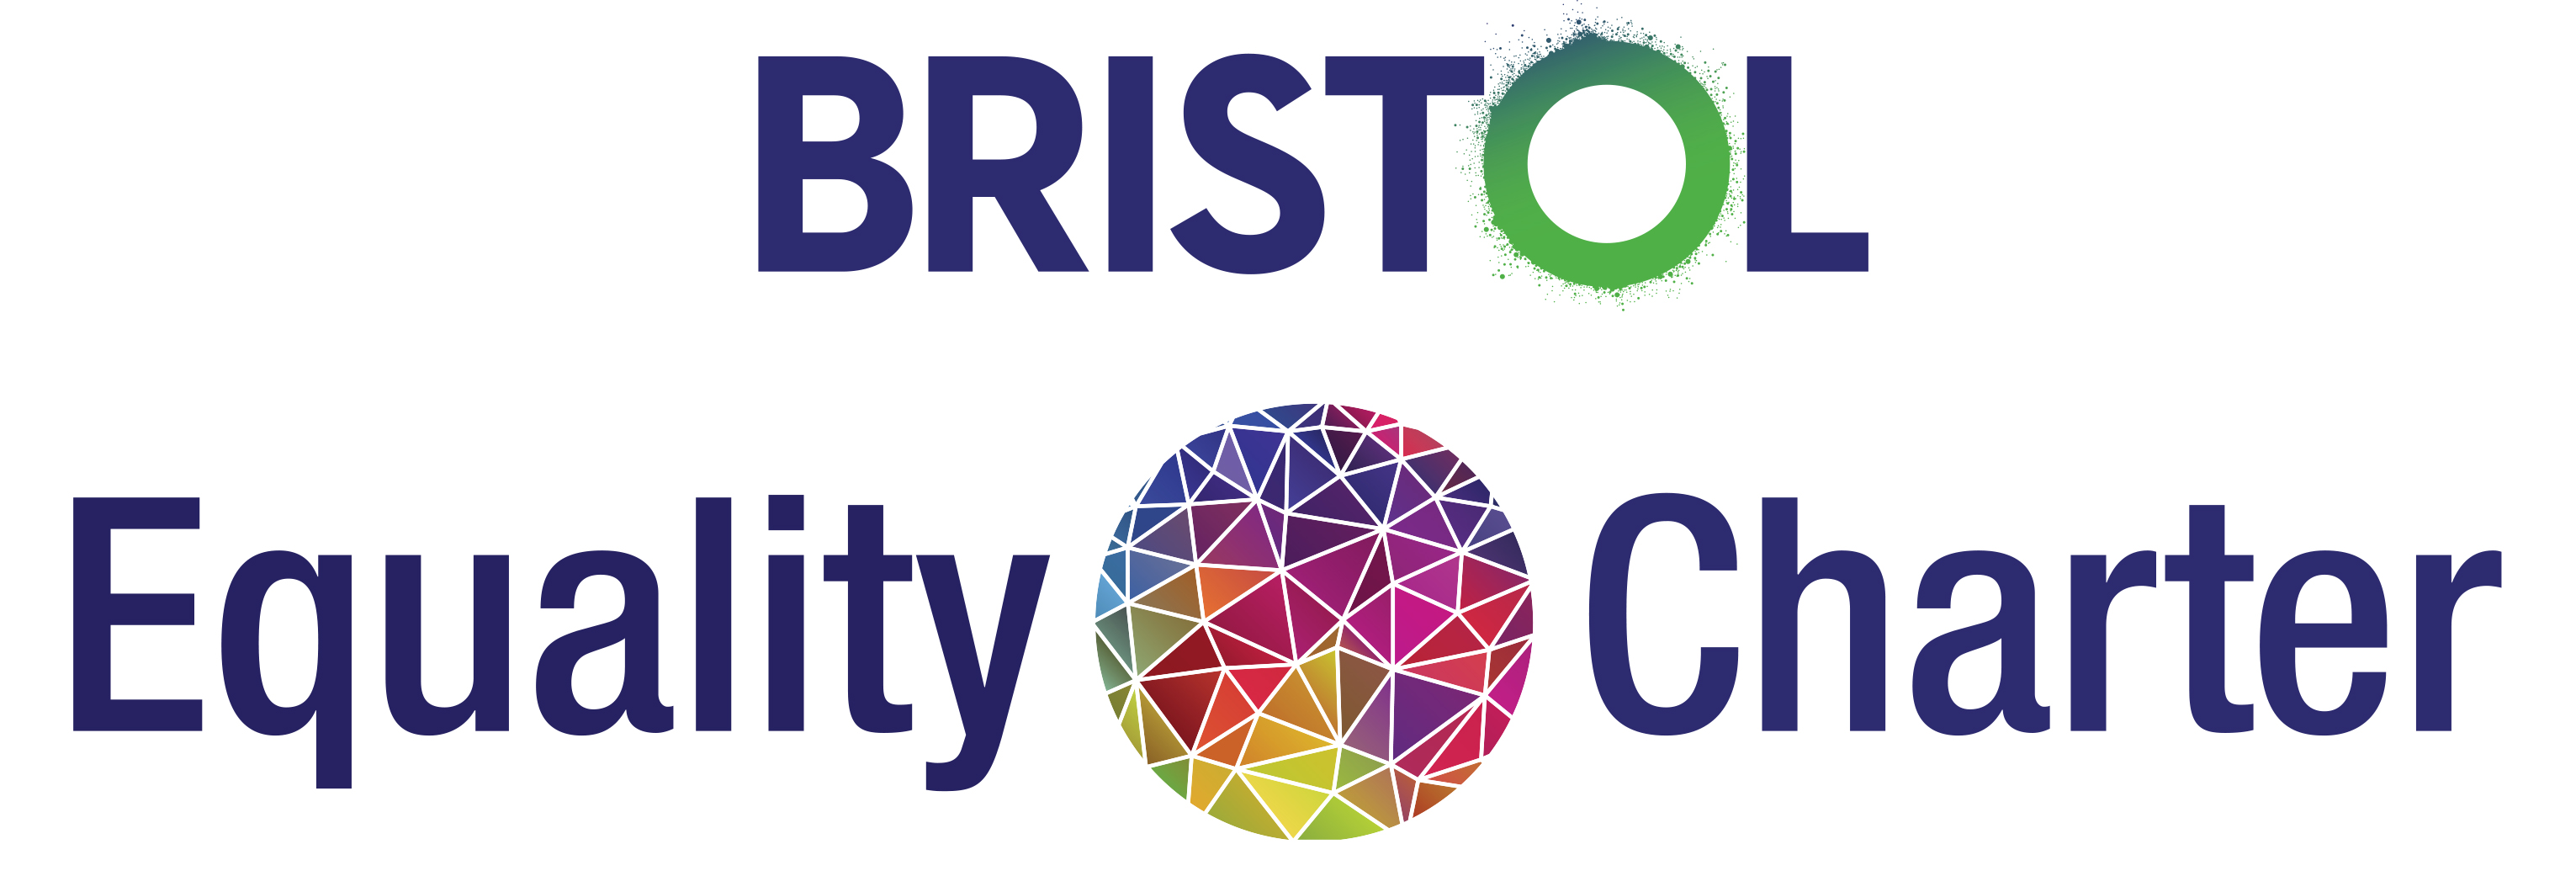 Bristol Equality Charter